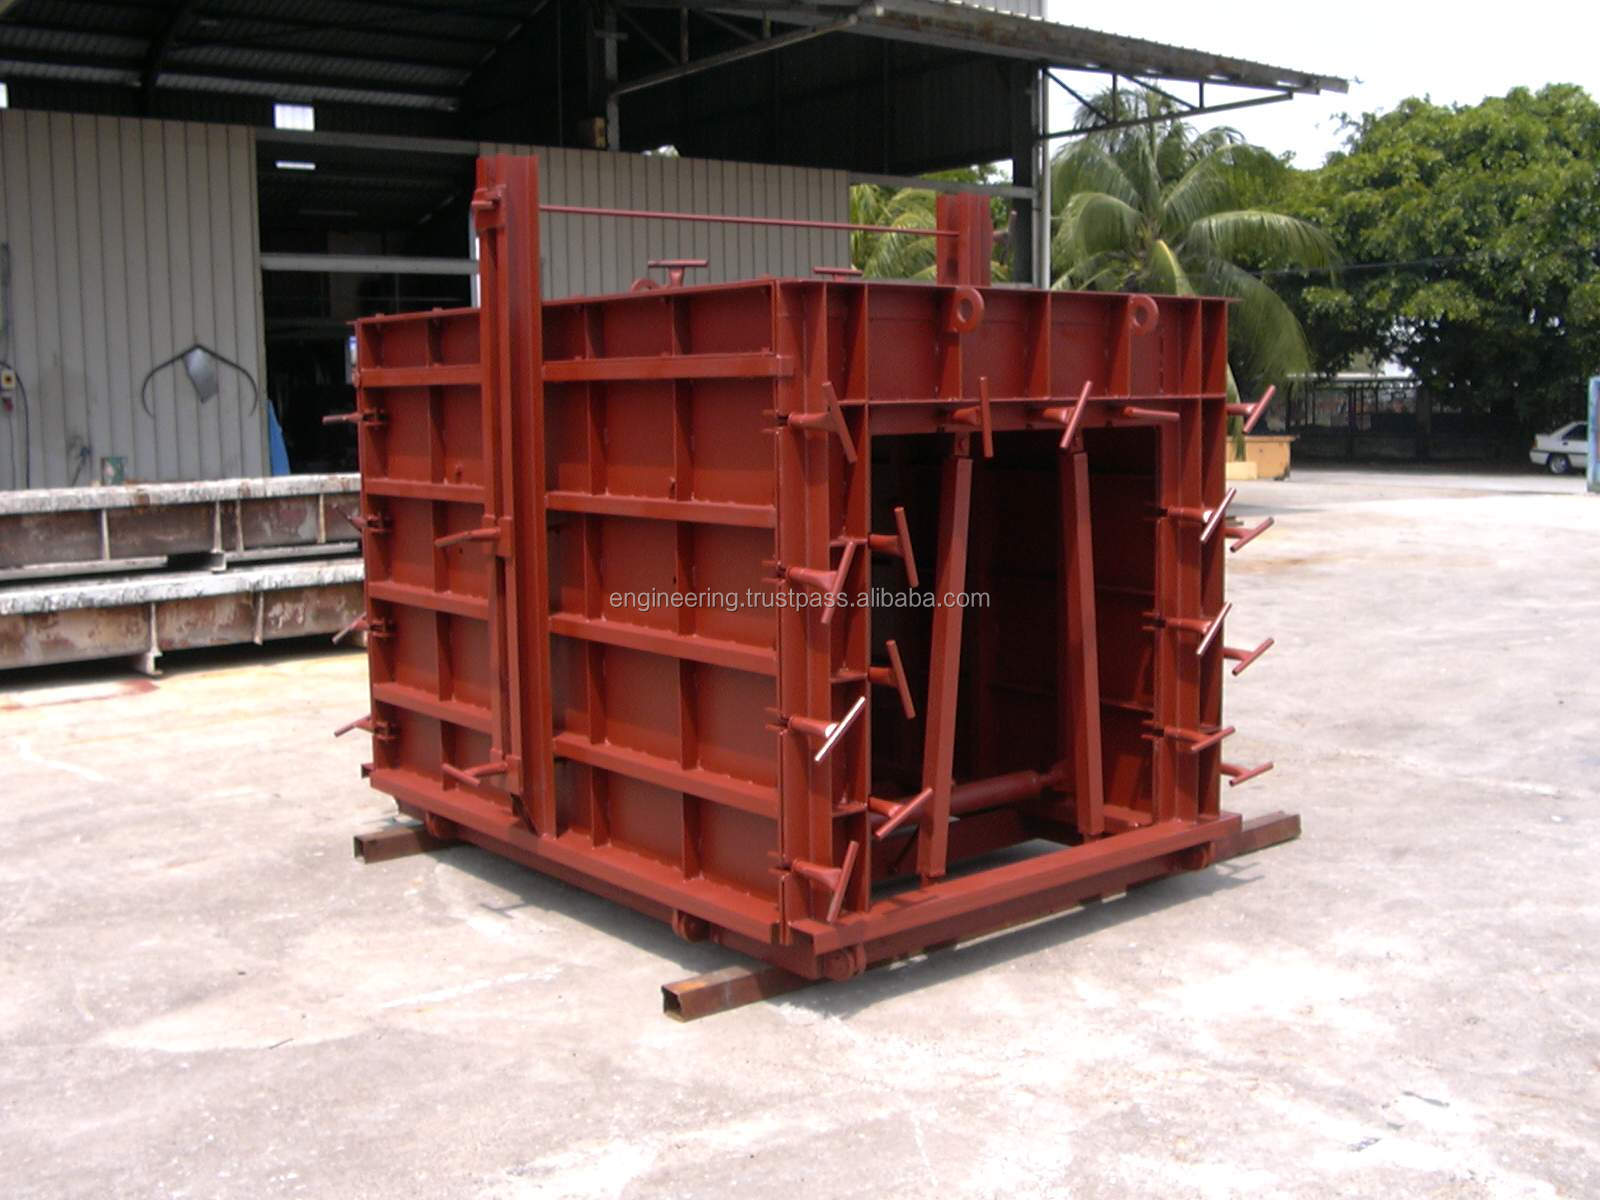 Box Culvert Concrete Mould (without Dry Weather Flow) Made in Malaysia